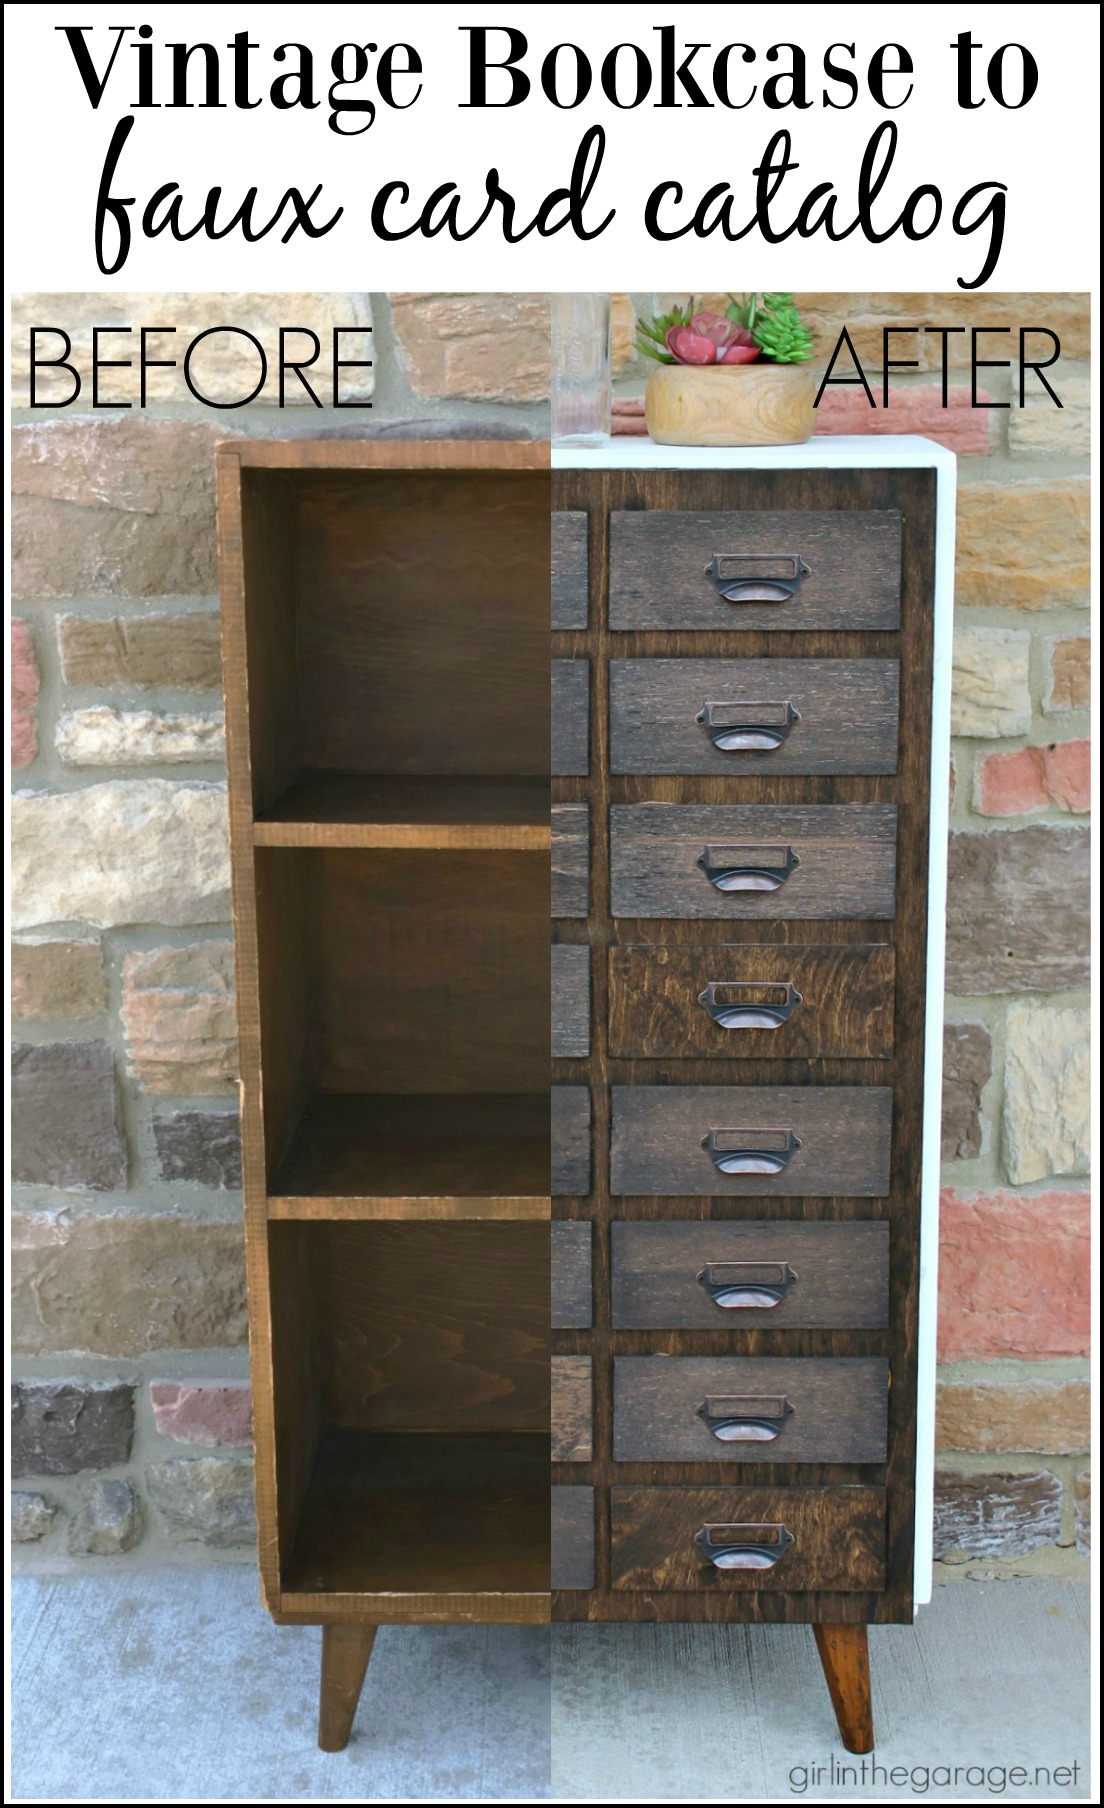 Vintage Bookcase to Faux Card Catalog - Girl in the Garage